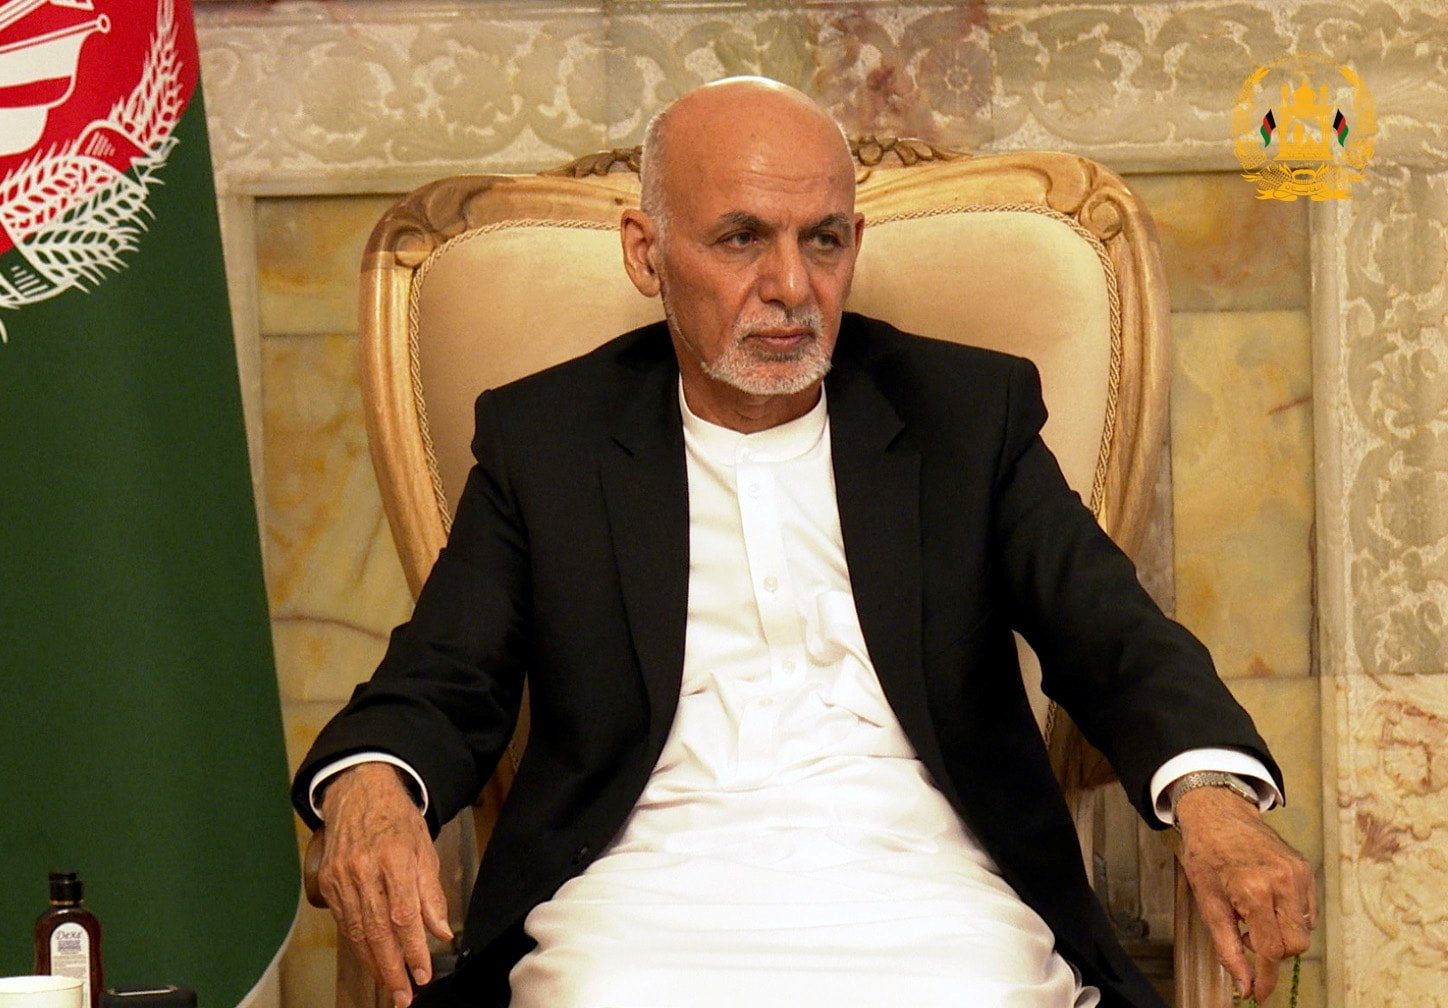 Afghanistan's President Ashraf Ghani attends a security meeting in Kabul, Afghanistan, August 14, 2021. (Reuters Photo)